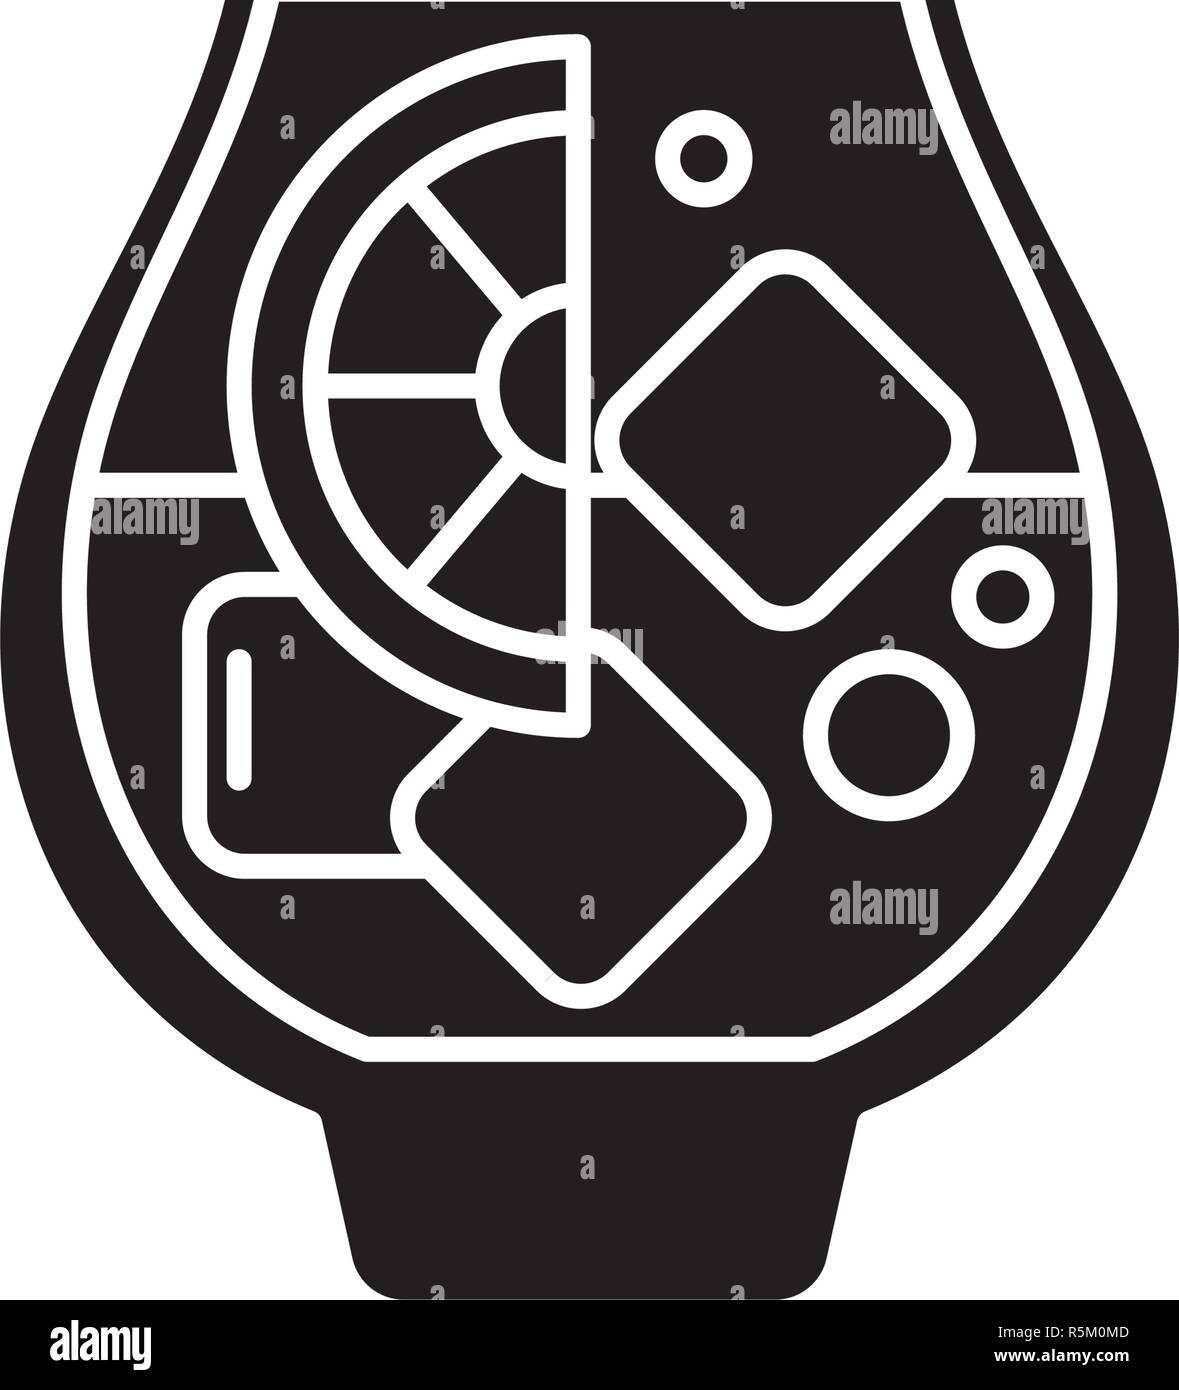 Brandy black icon, vector sign on isolated background. Brandy concept symbol, illustration  Stock Vector